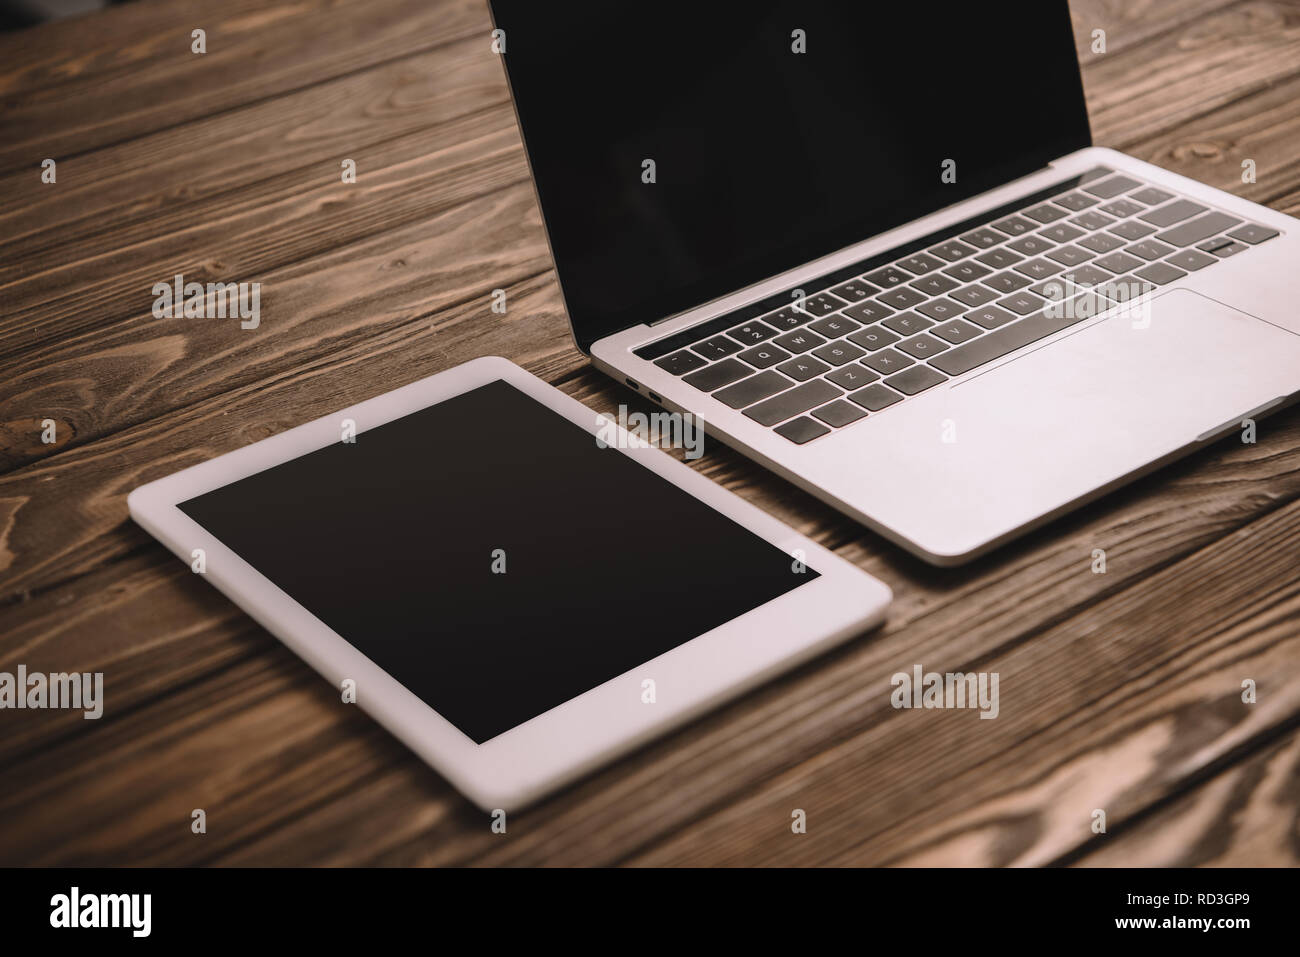 digital tablet and laptop with blank screens on wooden table - Stock Image